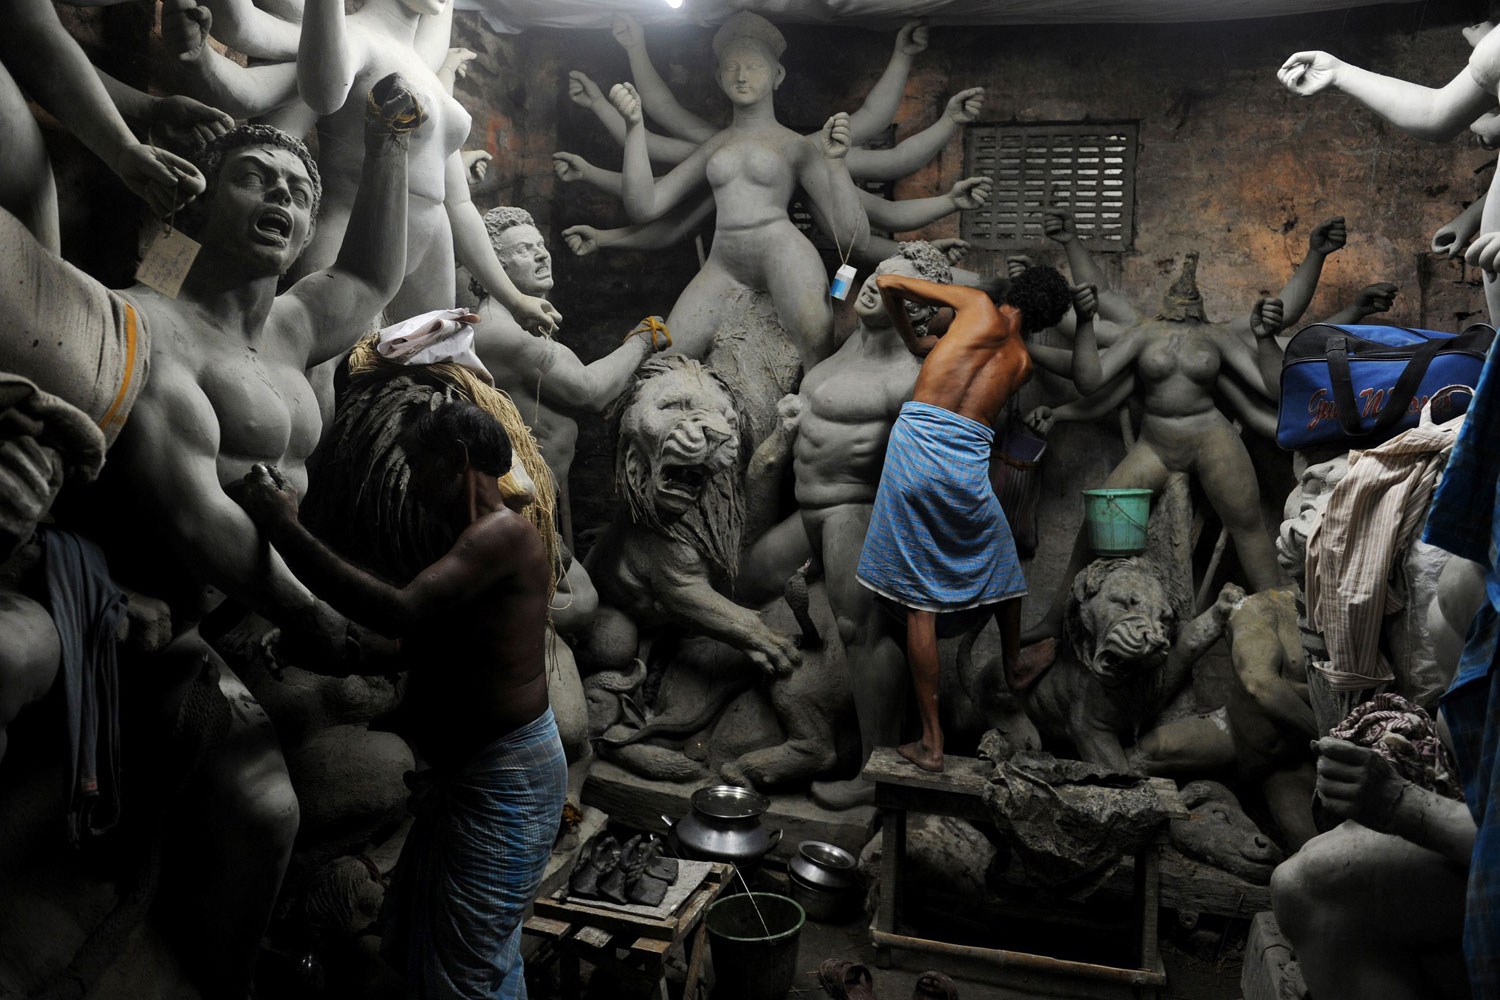 August 22, 2011. Artisans work on semi-finished clay statues of the Hindu goddess Durga in Kumartuli, a neighborhood of Kolkata famed for its clay idols. Ongoing monsoon rains have made it hard for idolmakers to finish onschedule.